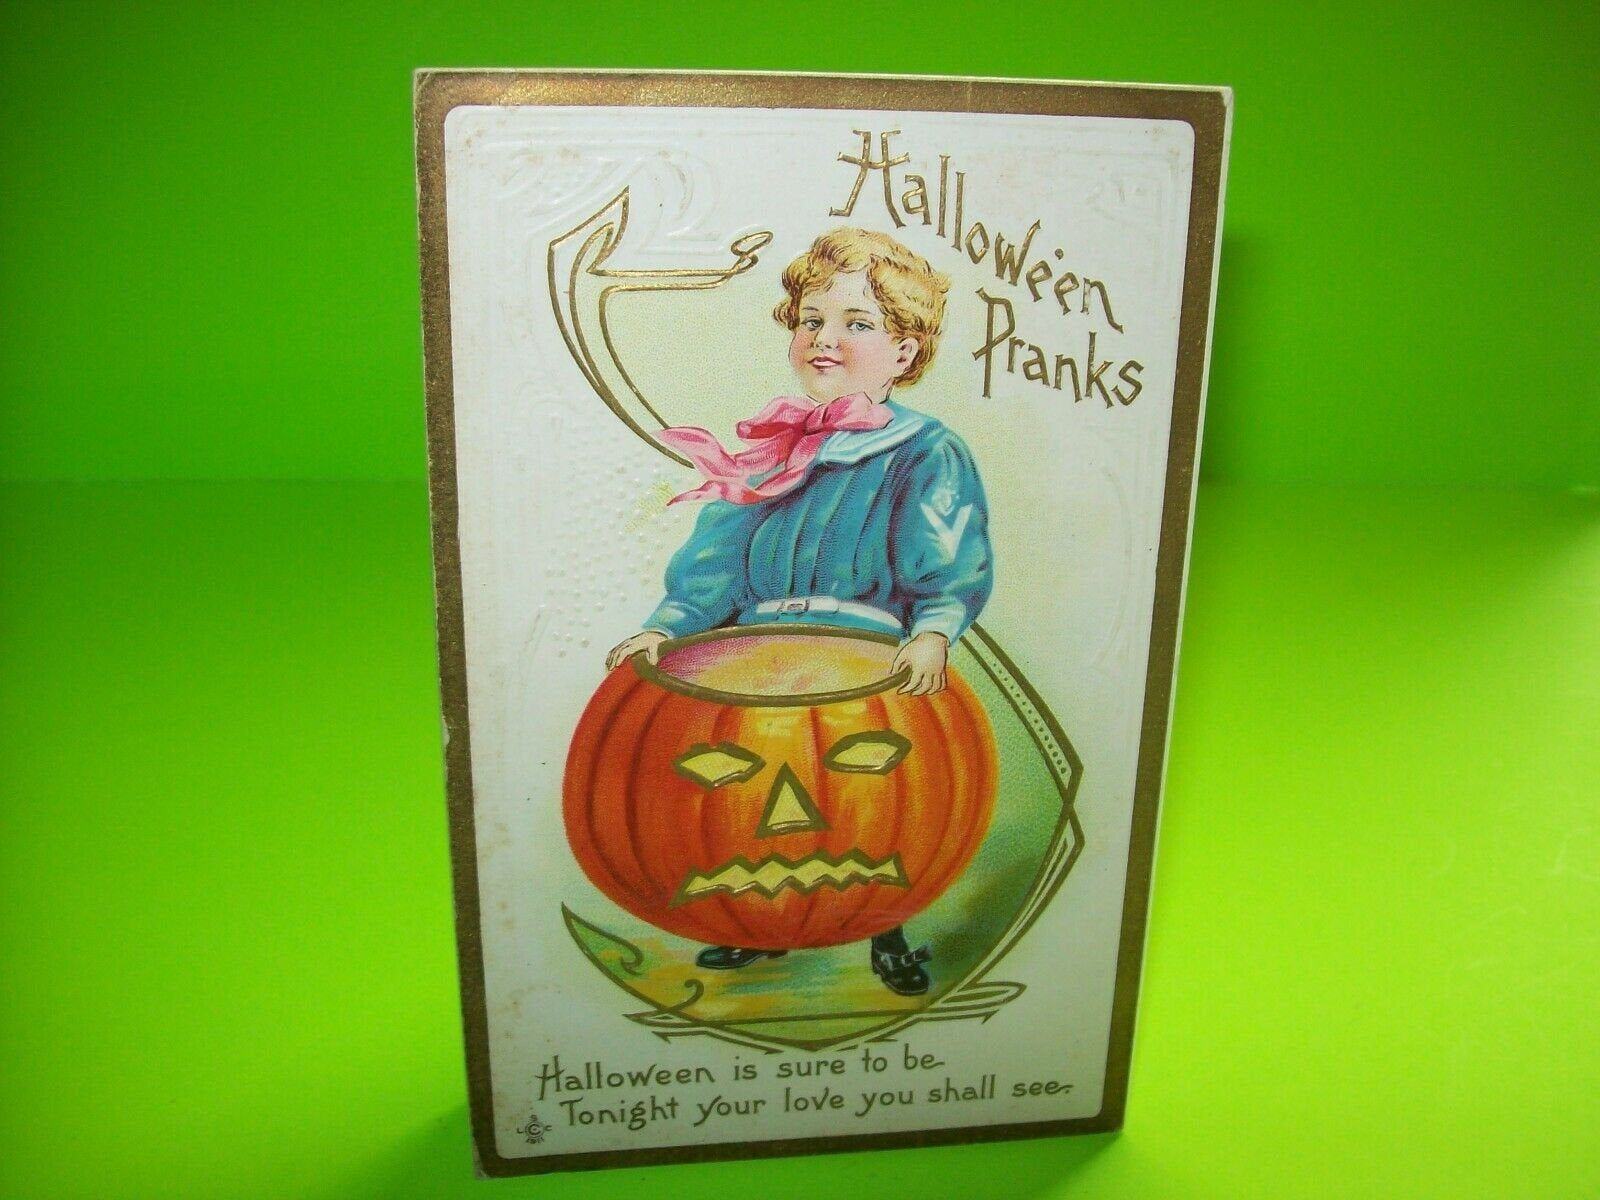 Pin on Halloween Postcards & Spooky Cool Items